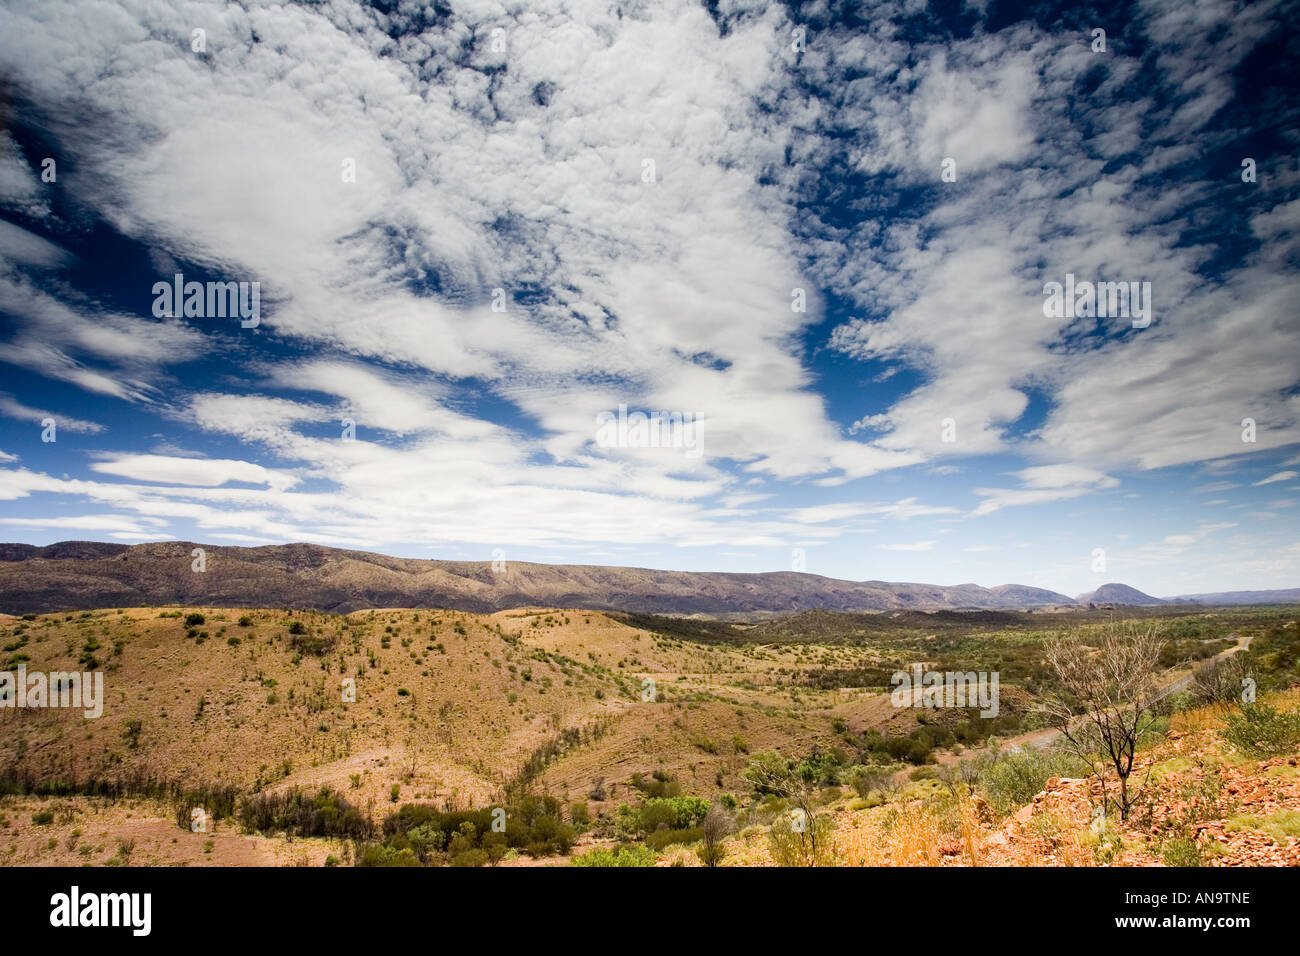 West Macdonnell Mountain Range Northern Territory Australia - Stock Image